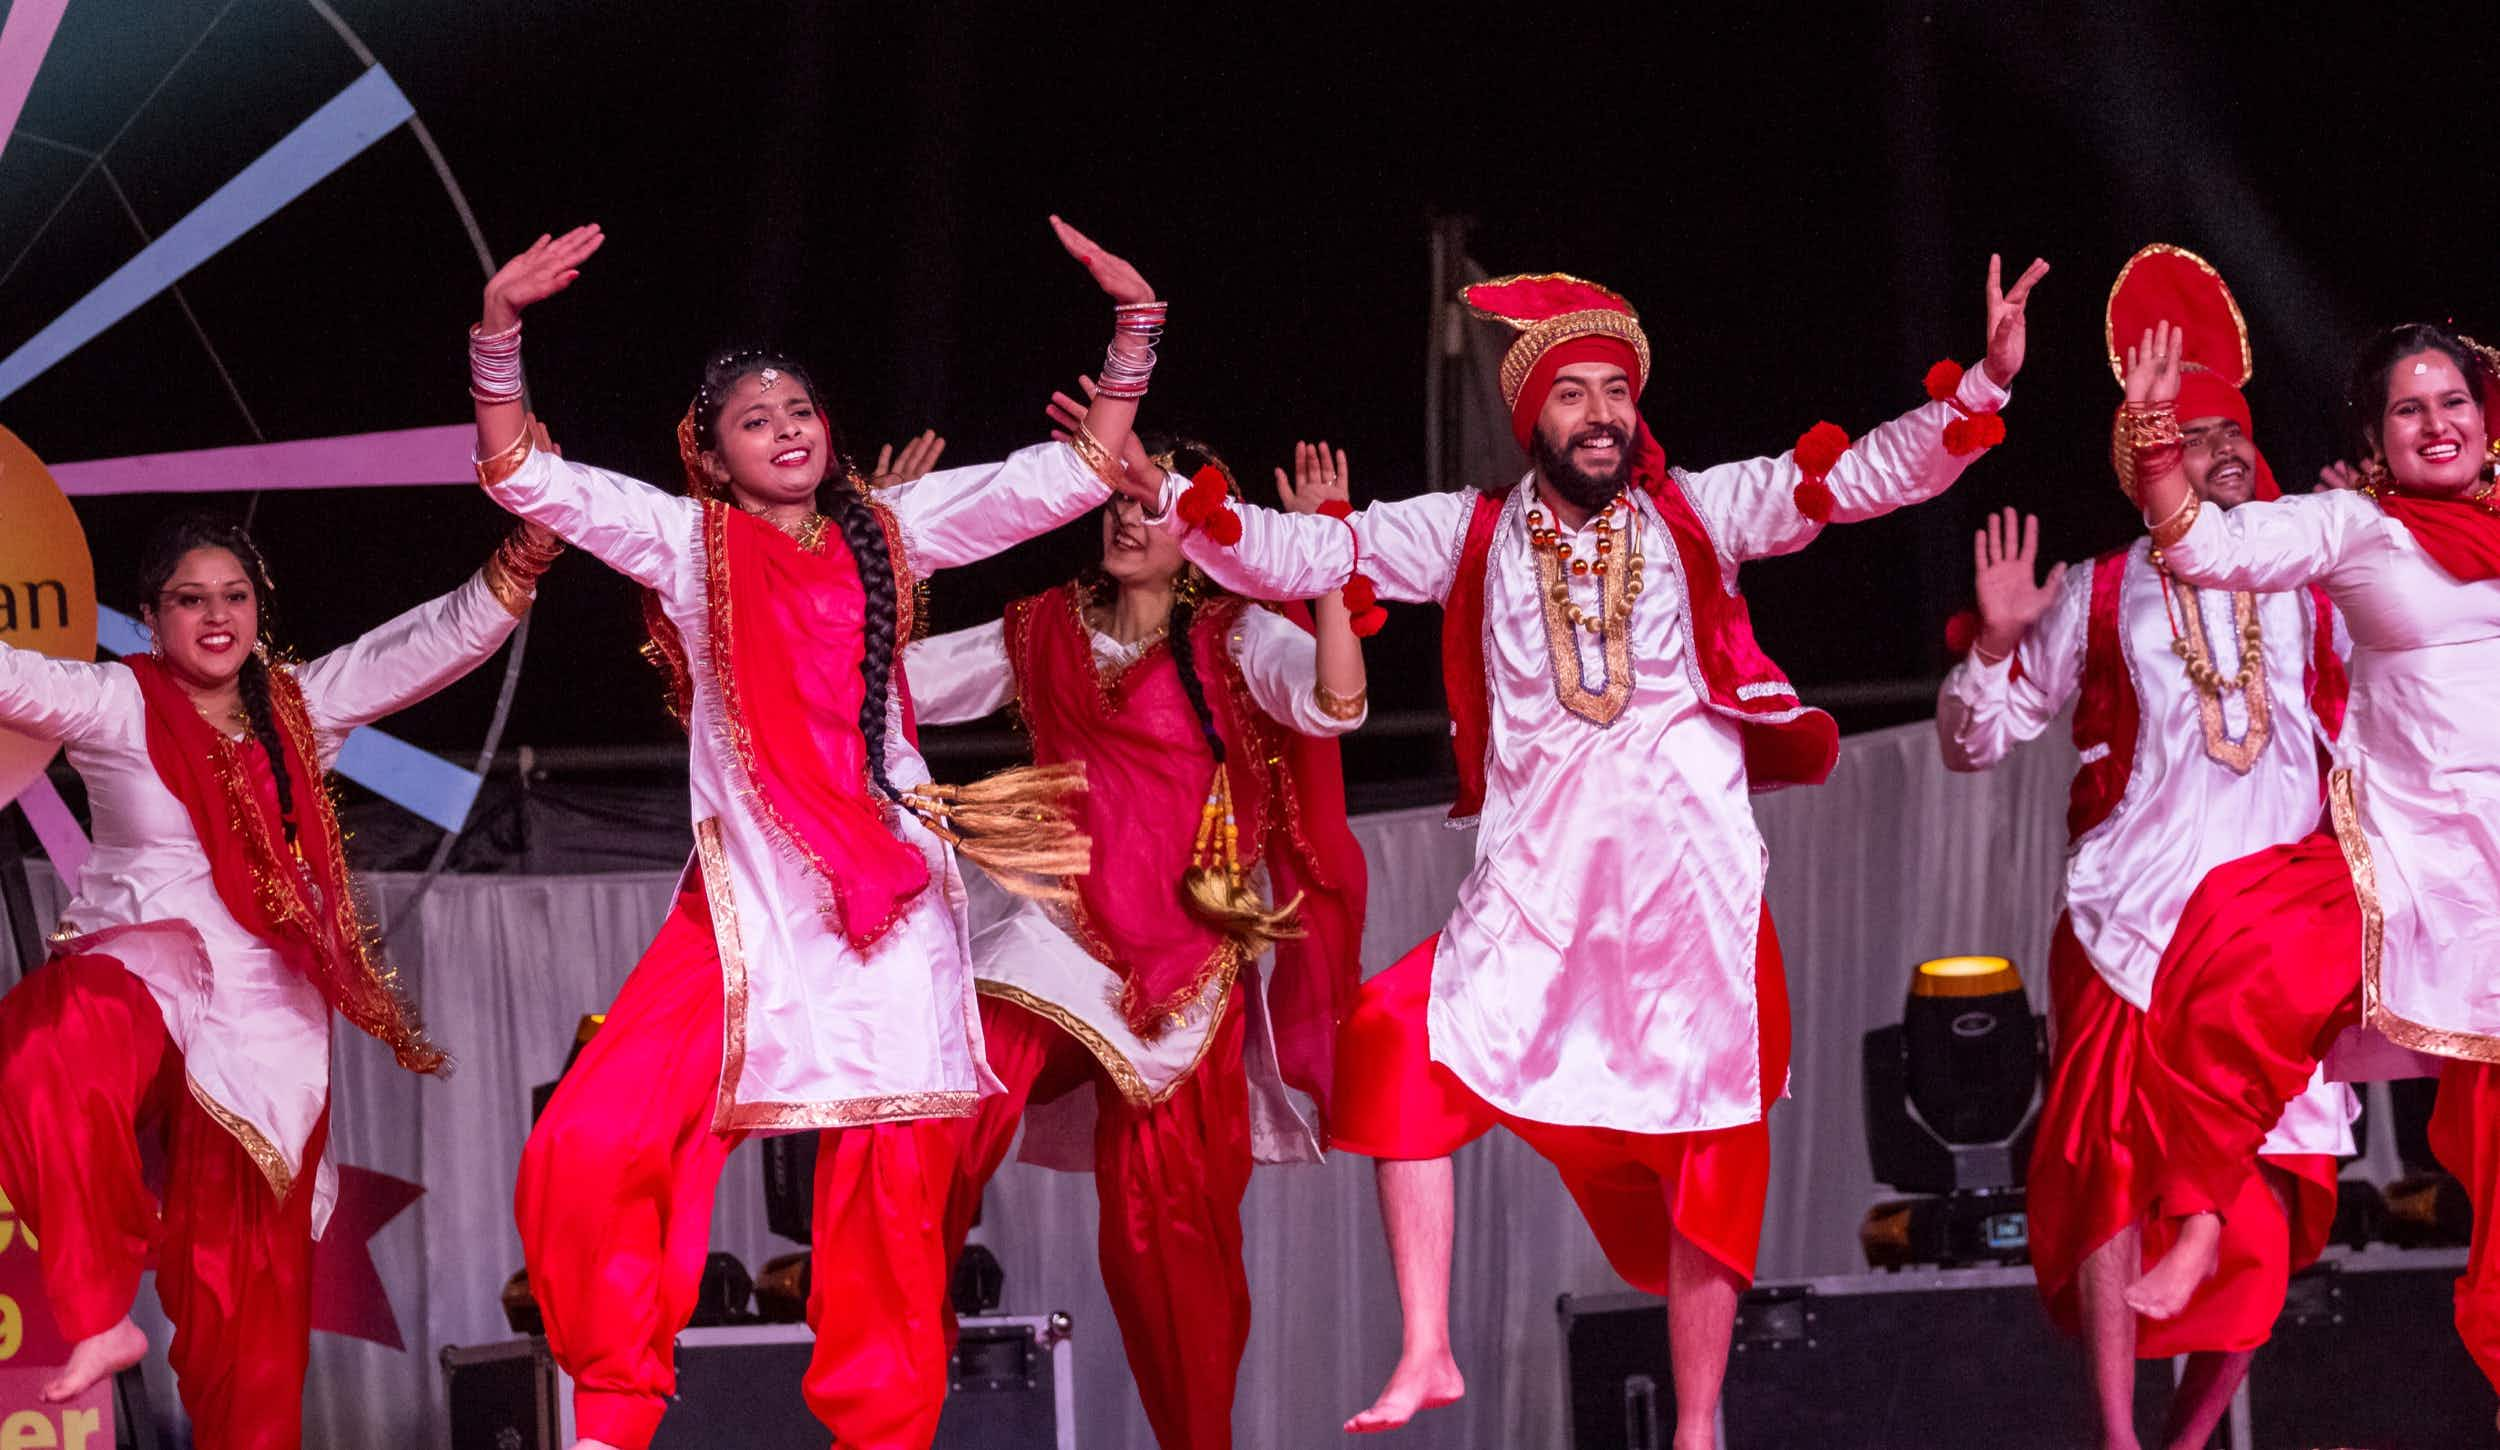 Artist Performing Bhangra Dance : Bikaner, Rajasthan/India - Jan 2019; Shutterstock ID 1368920021; Your name (First / Last): William Broich; GL account no.: 65050; Netsuite department name: Editorial ; Full Product or Project name including edition: 65050/Online Editorial/Alicia Johnson/best dances from around the world you can do at home